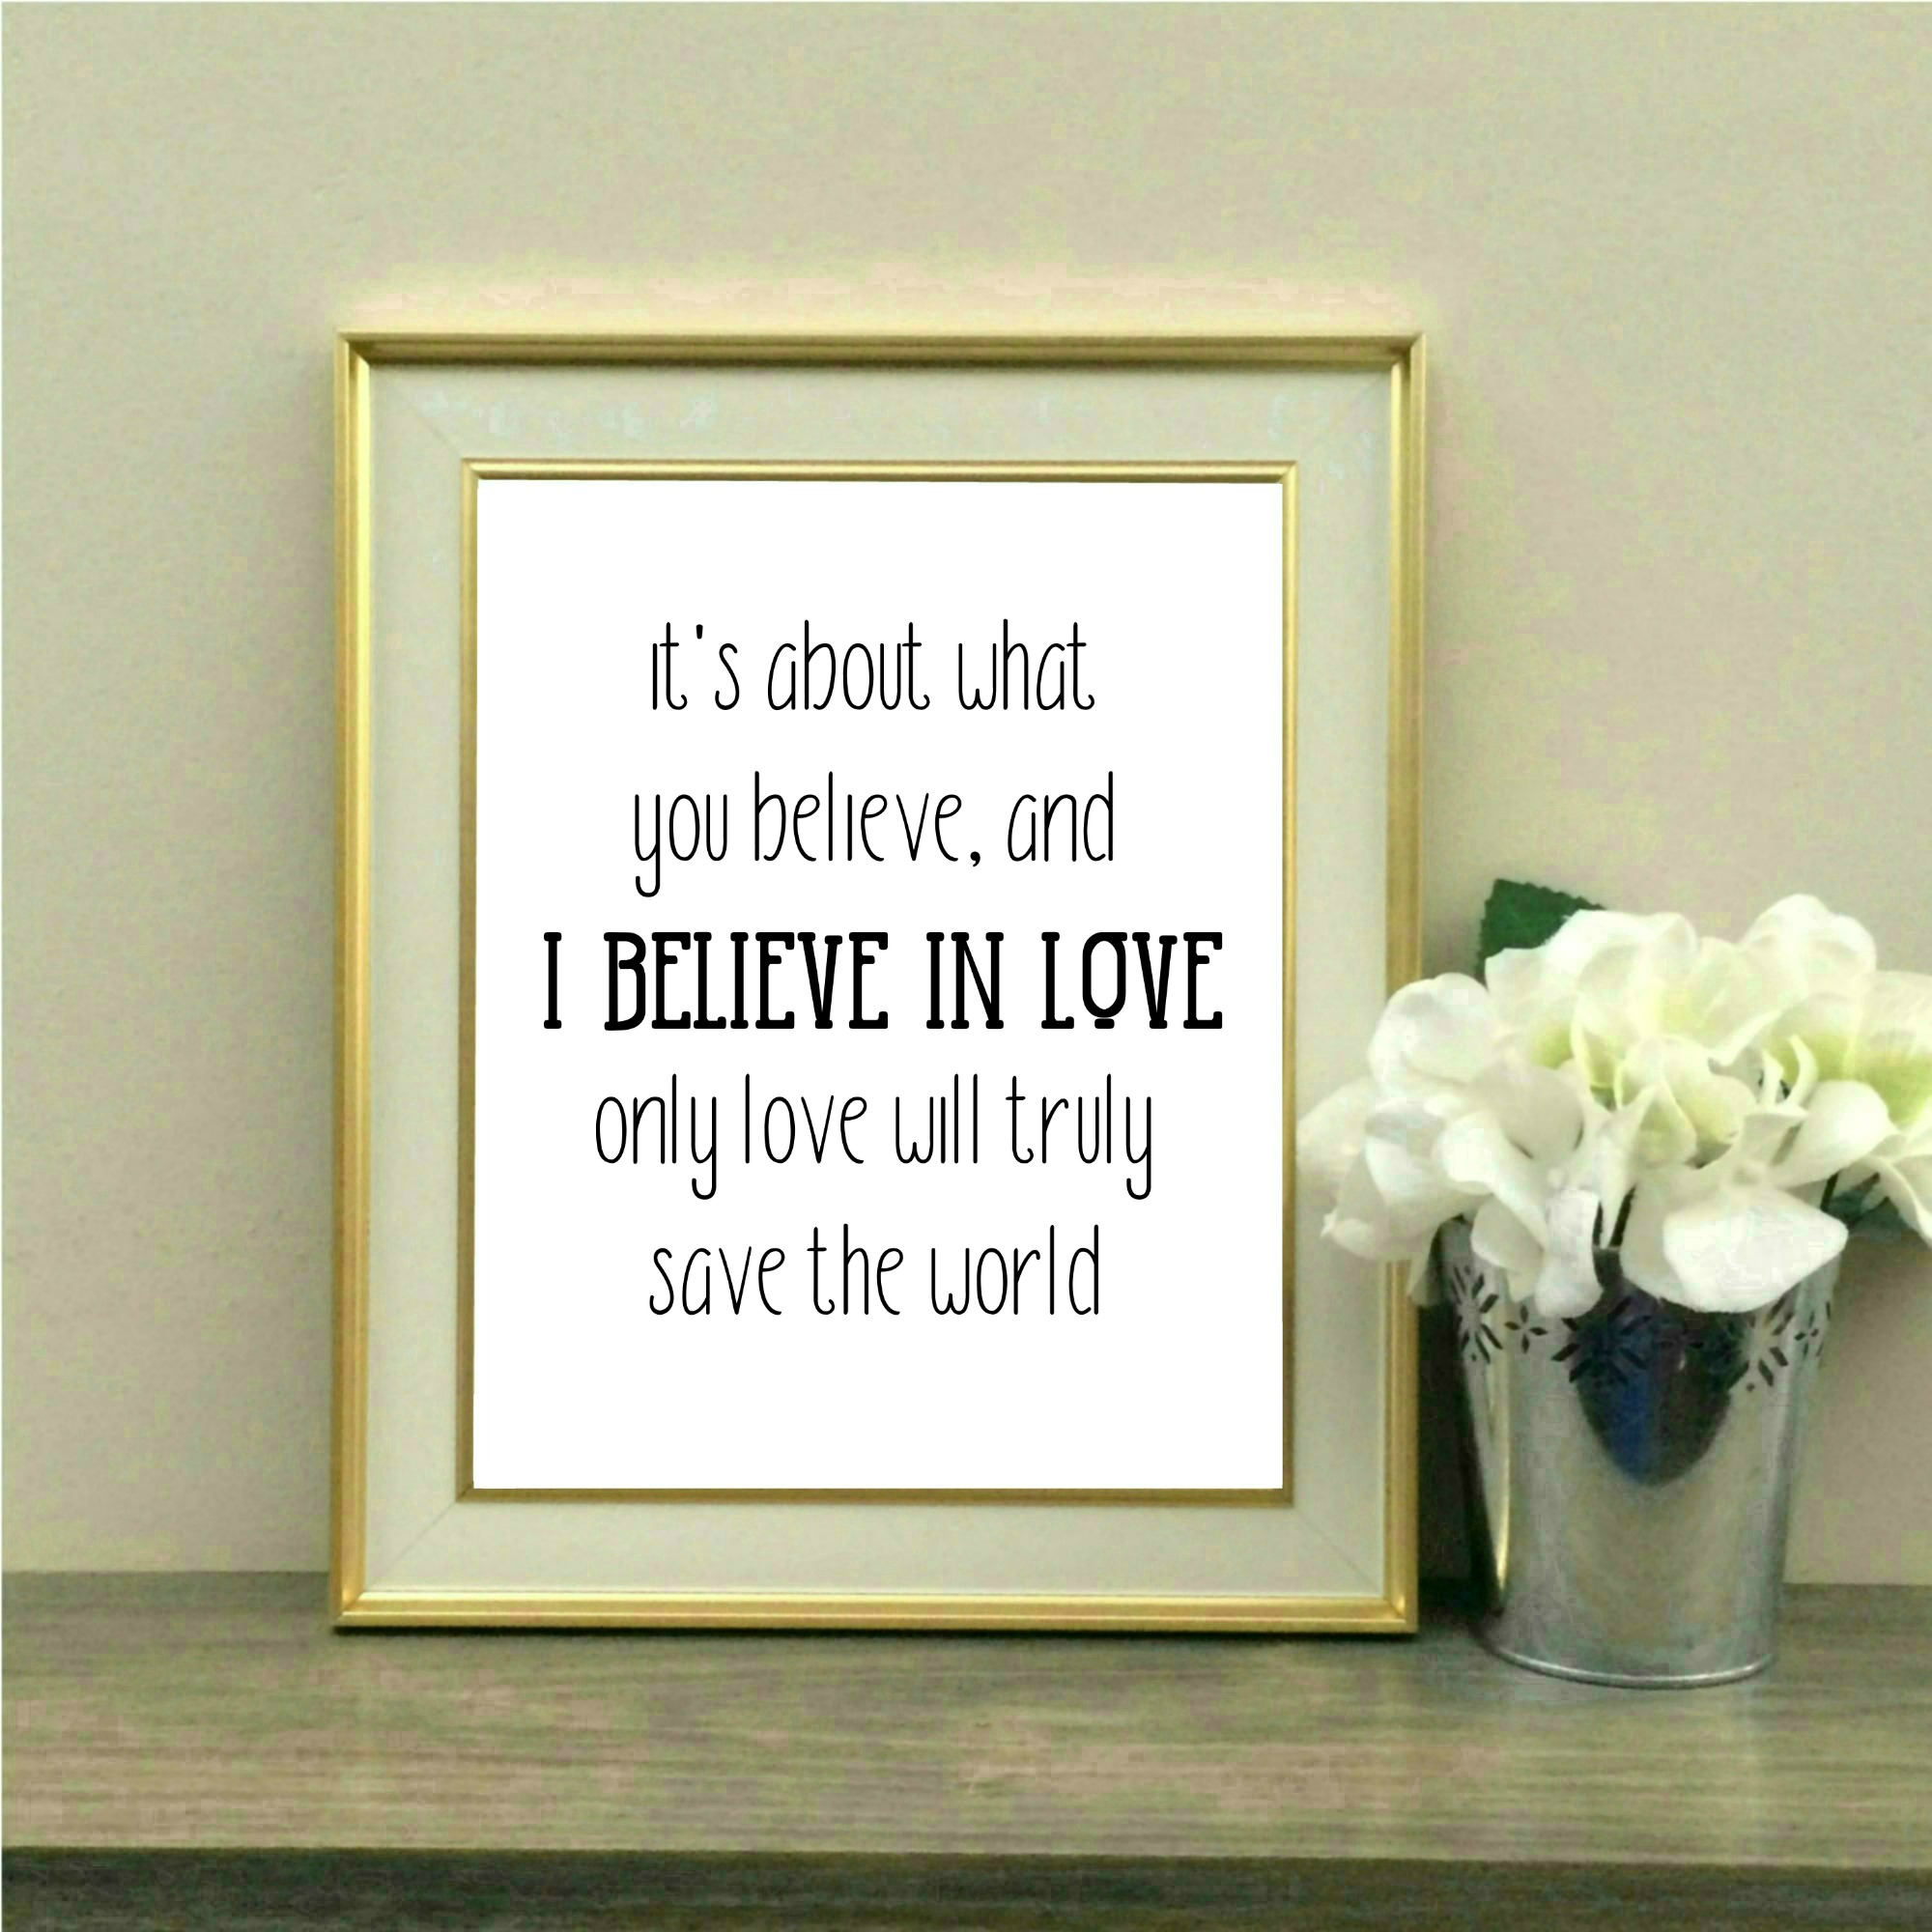 It\'s about what you believe. And I believe in love. Only